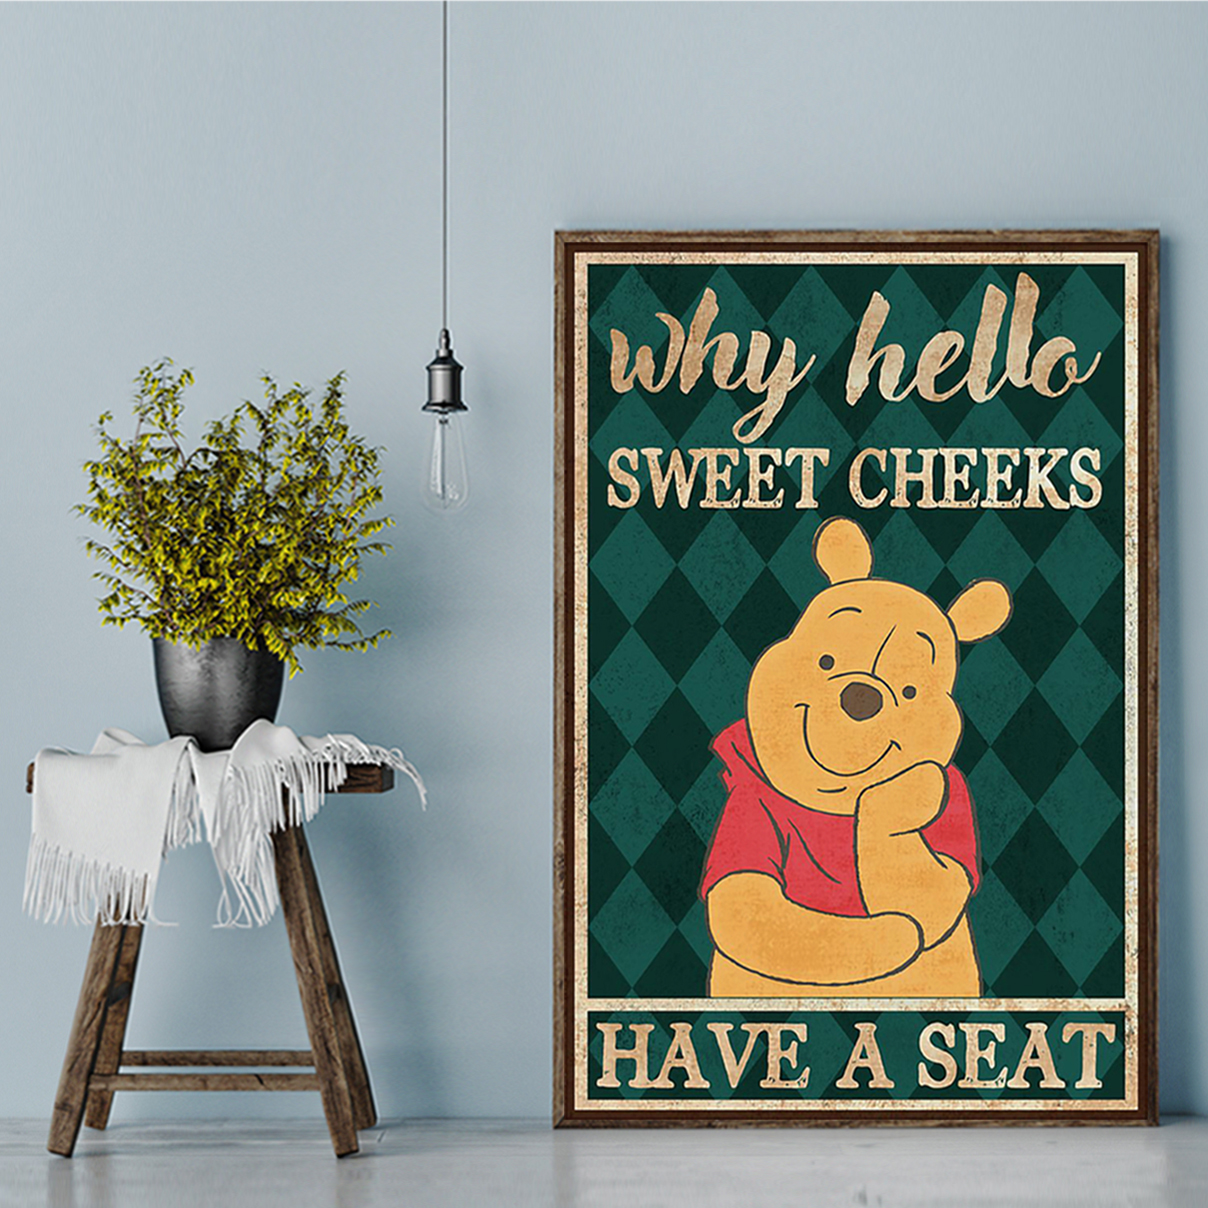 Pooh why hello sweet cheeks have a seat poster A2